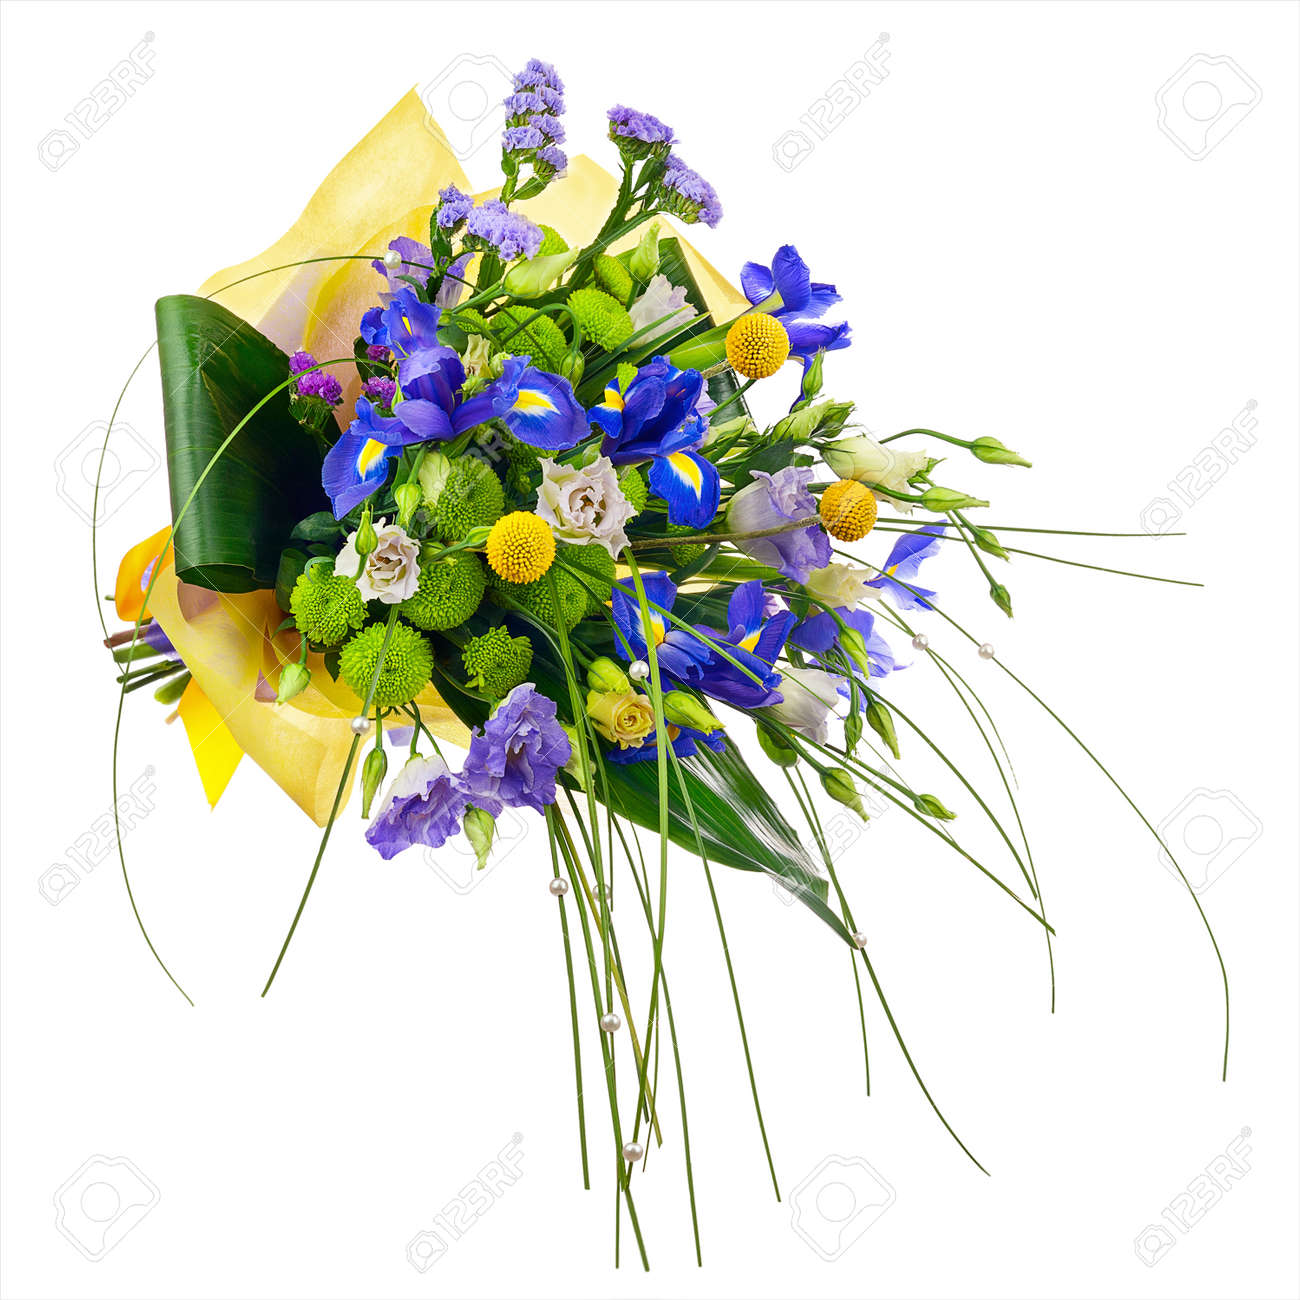 Flower Bouquet From Roses Green Carnation Iris And Statice Stock